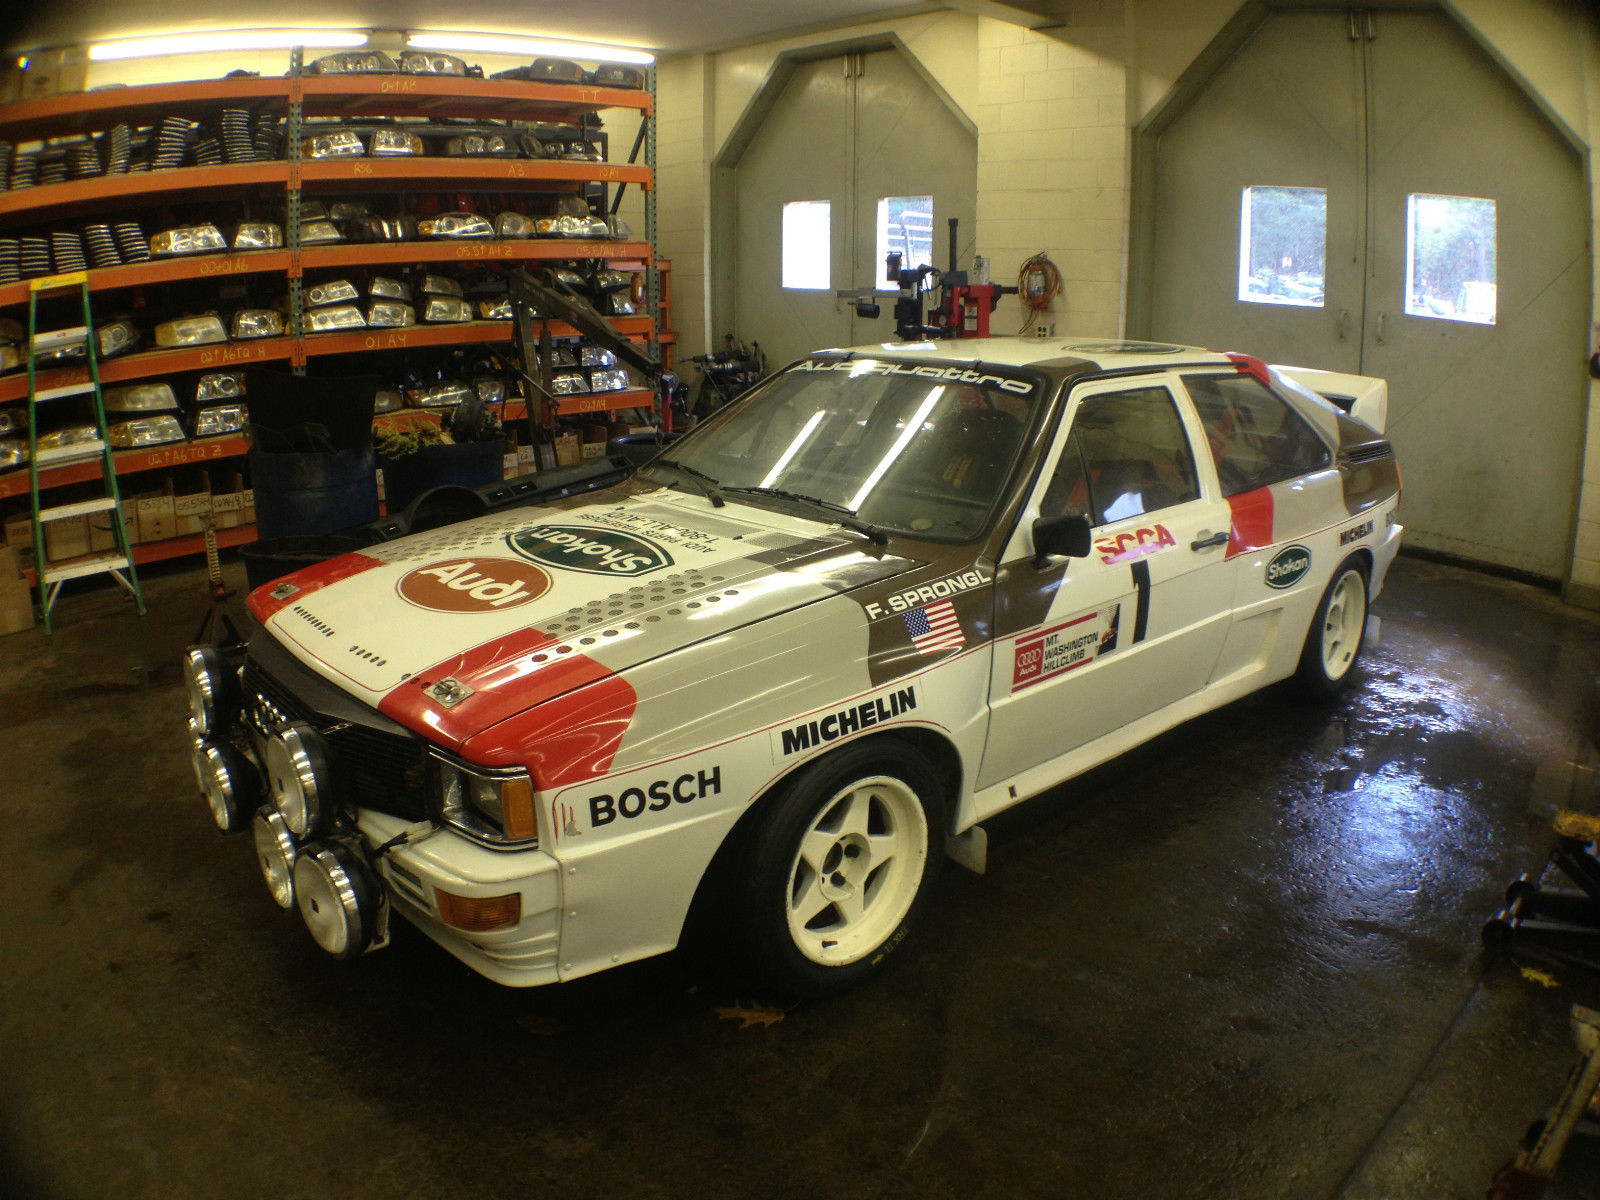 Factory Built Sterling Kit Car For Sale On Ebay: Factory-Built Audi Quattro Group B Rally Car For Sale